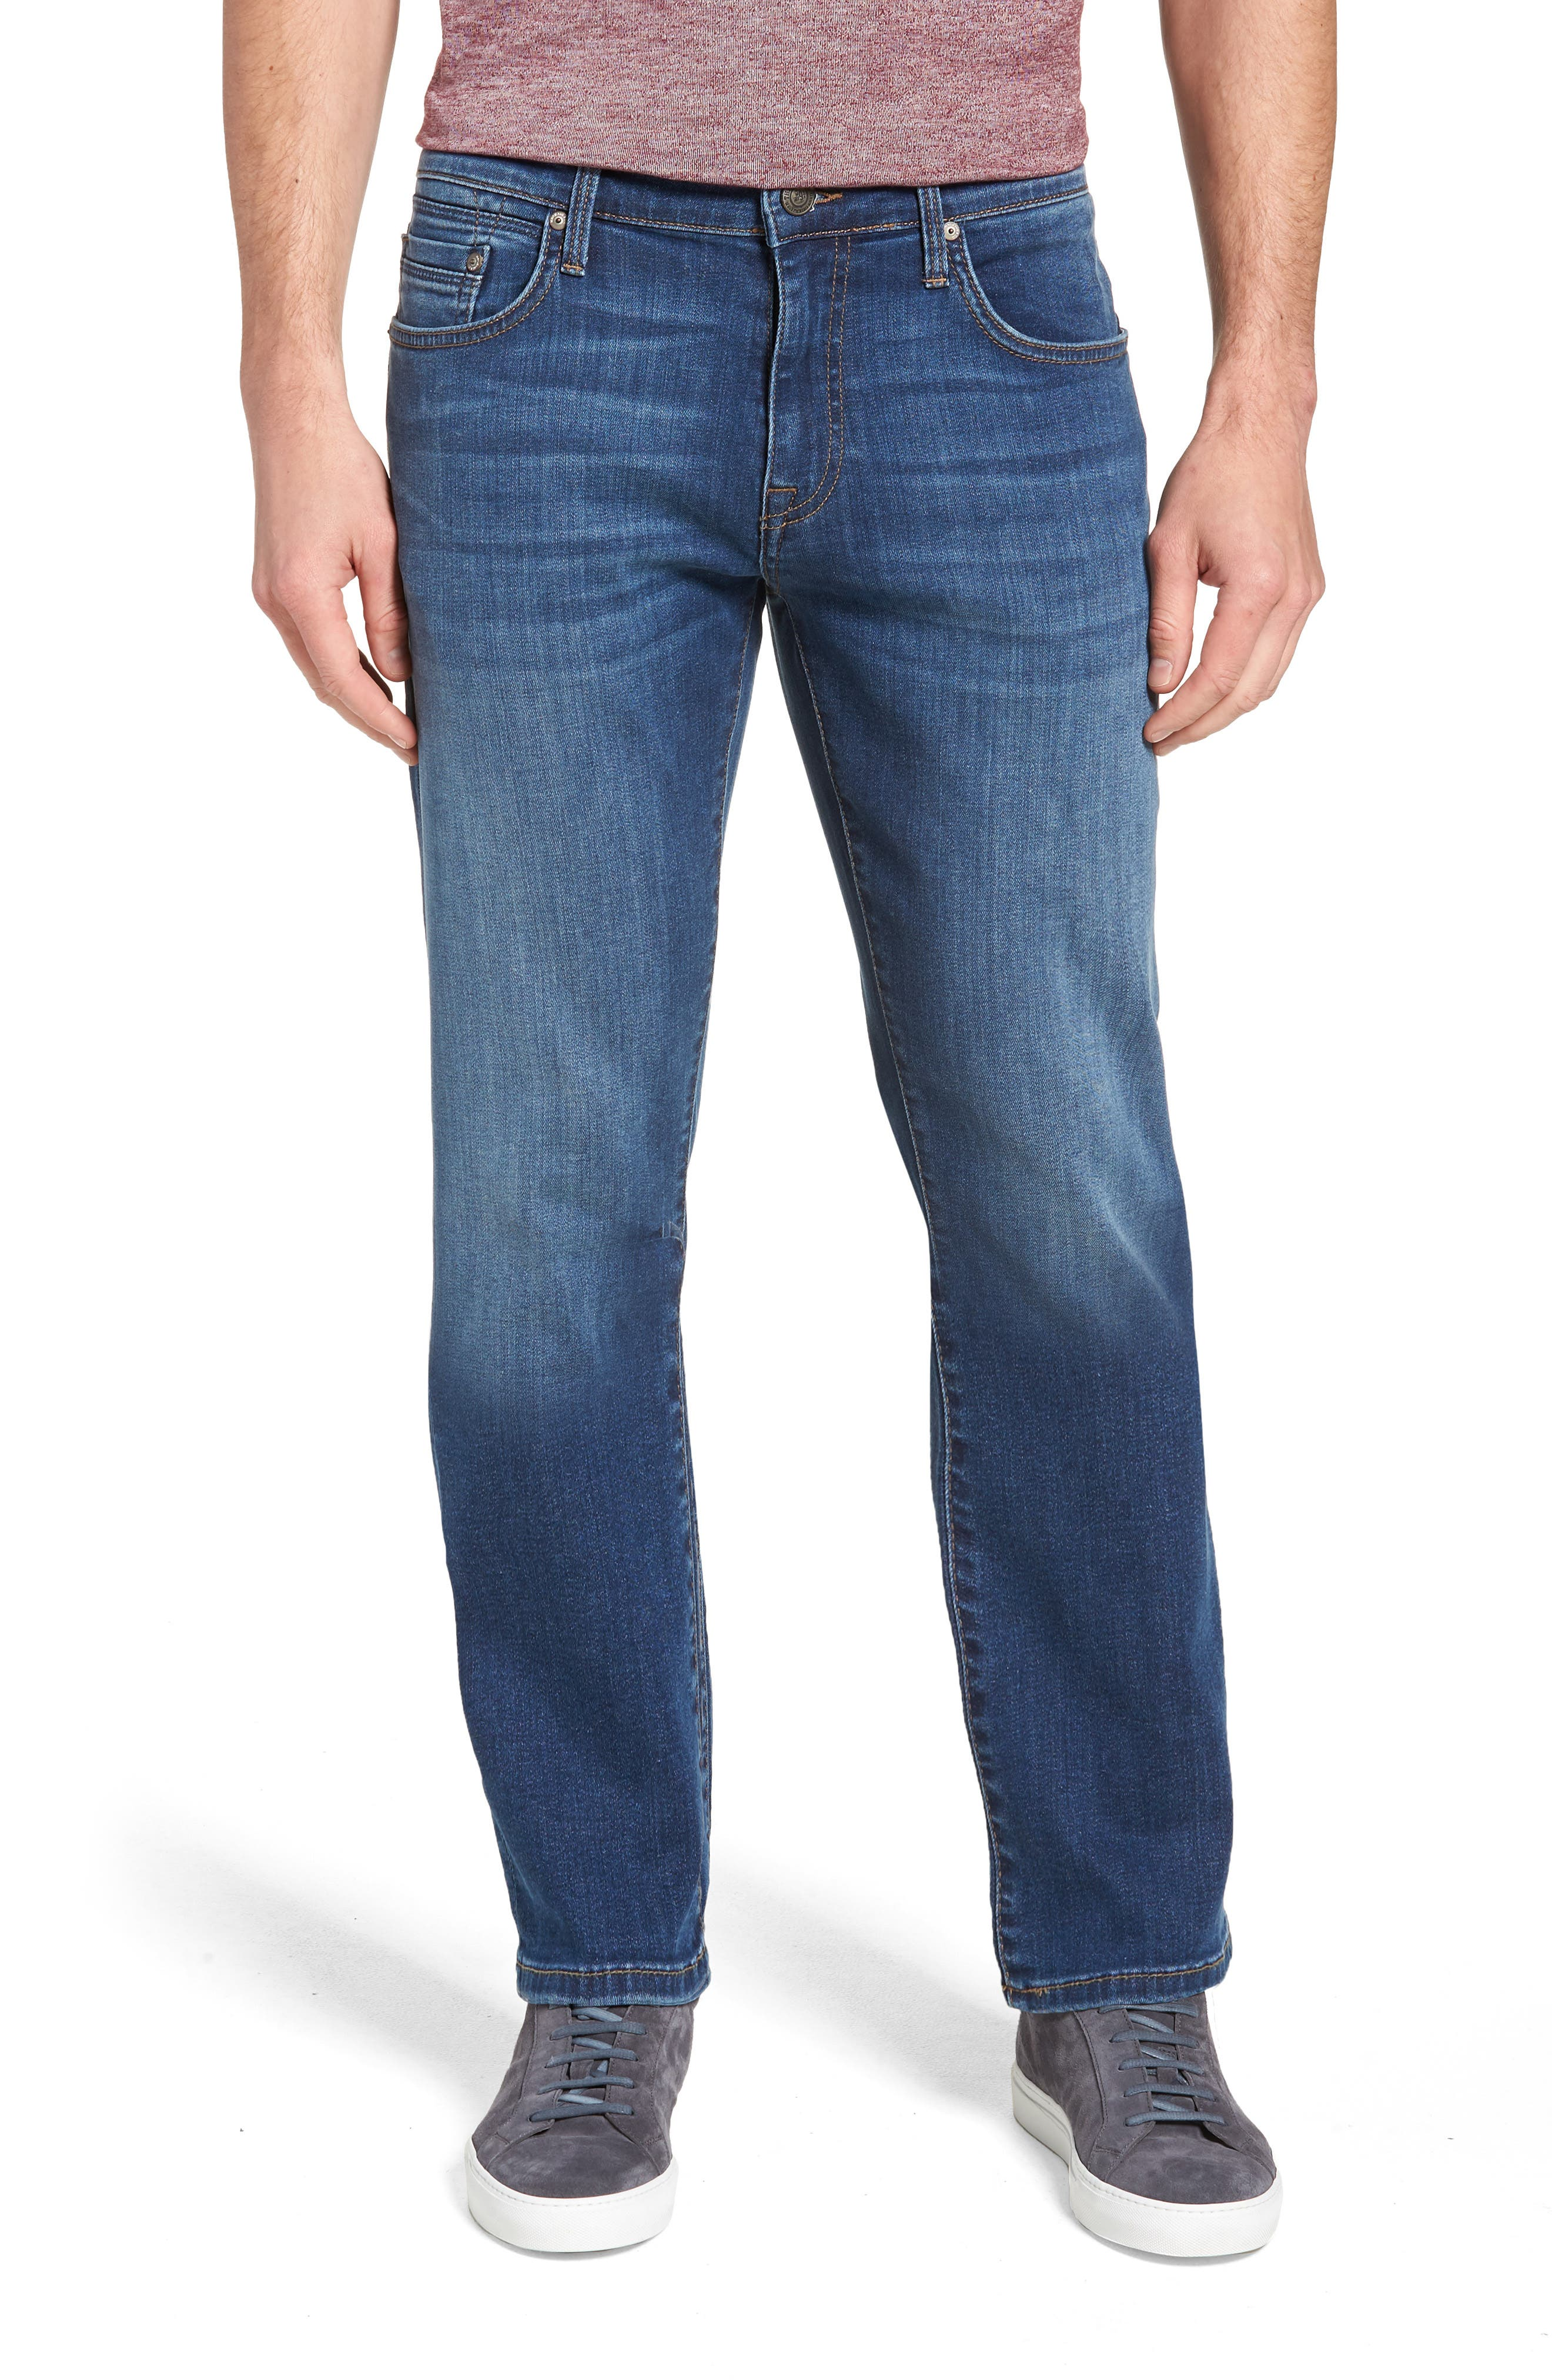 Zach Straight Leg Jeans,                         Main,                         color, DARK USED CAPITOL HILL